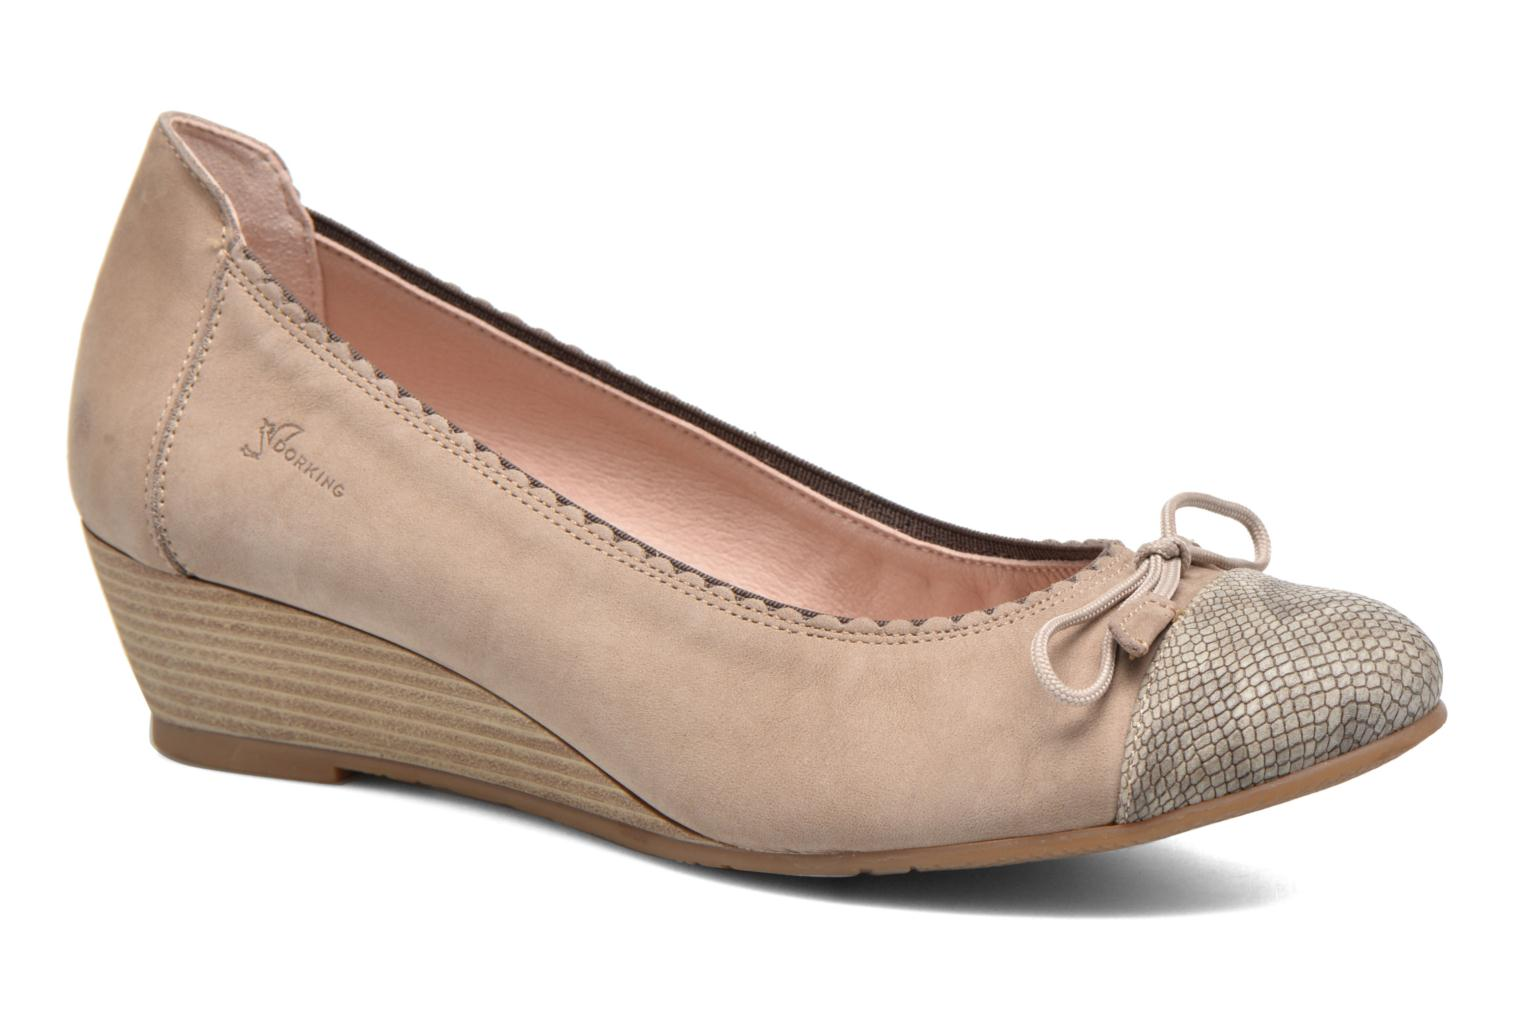 Marques Chaussure femme Dorking femme Marcu 6670 Taupe